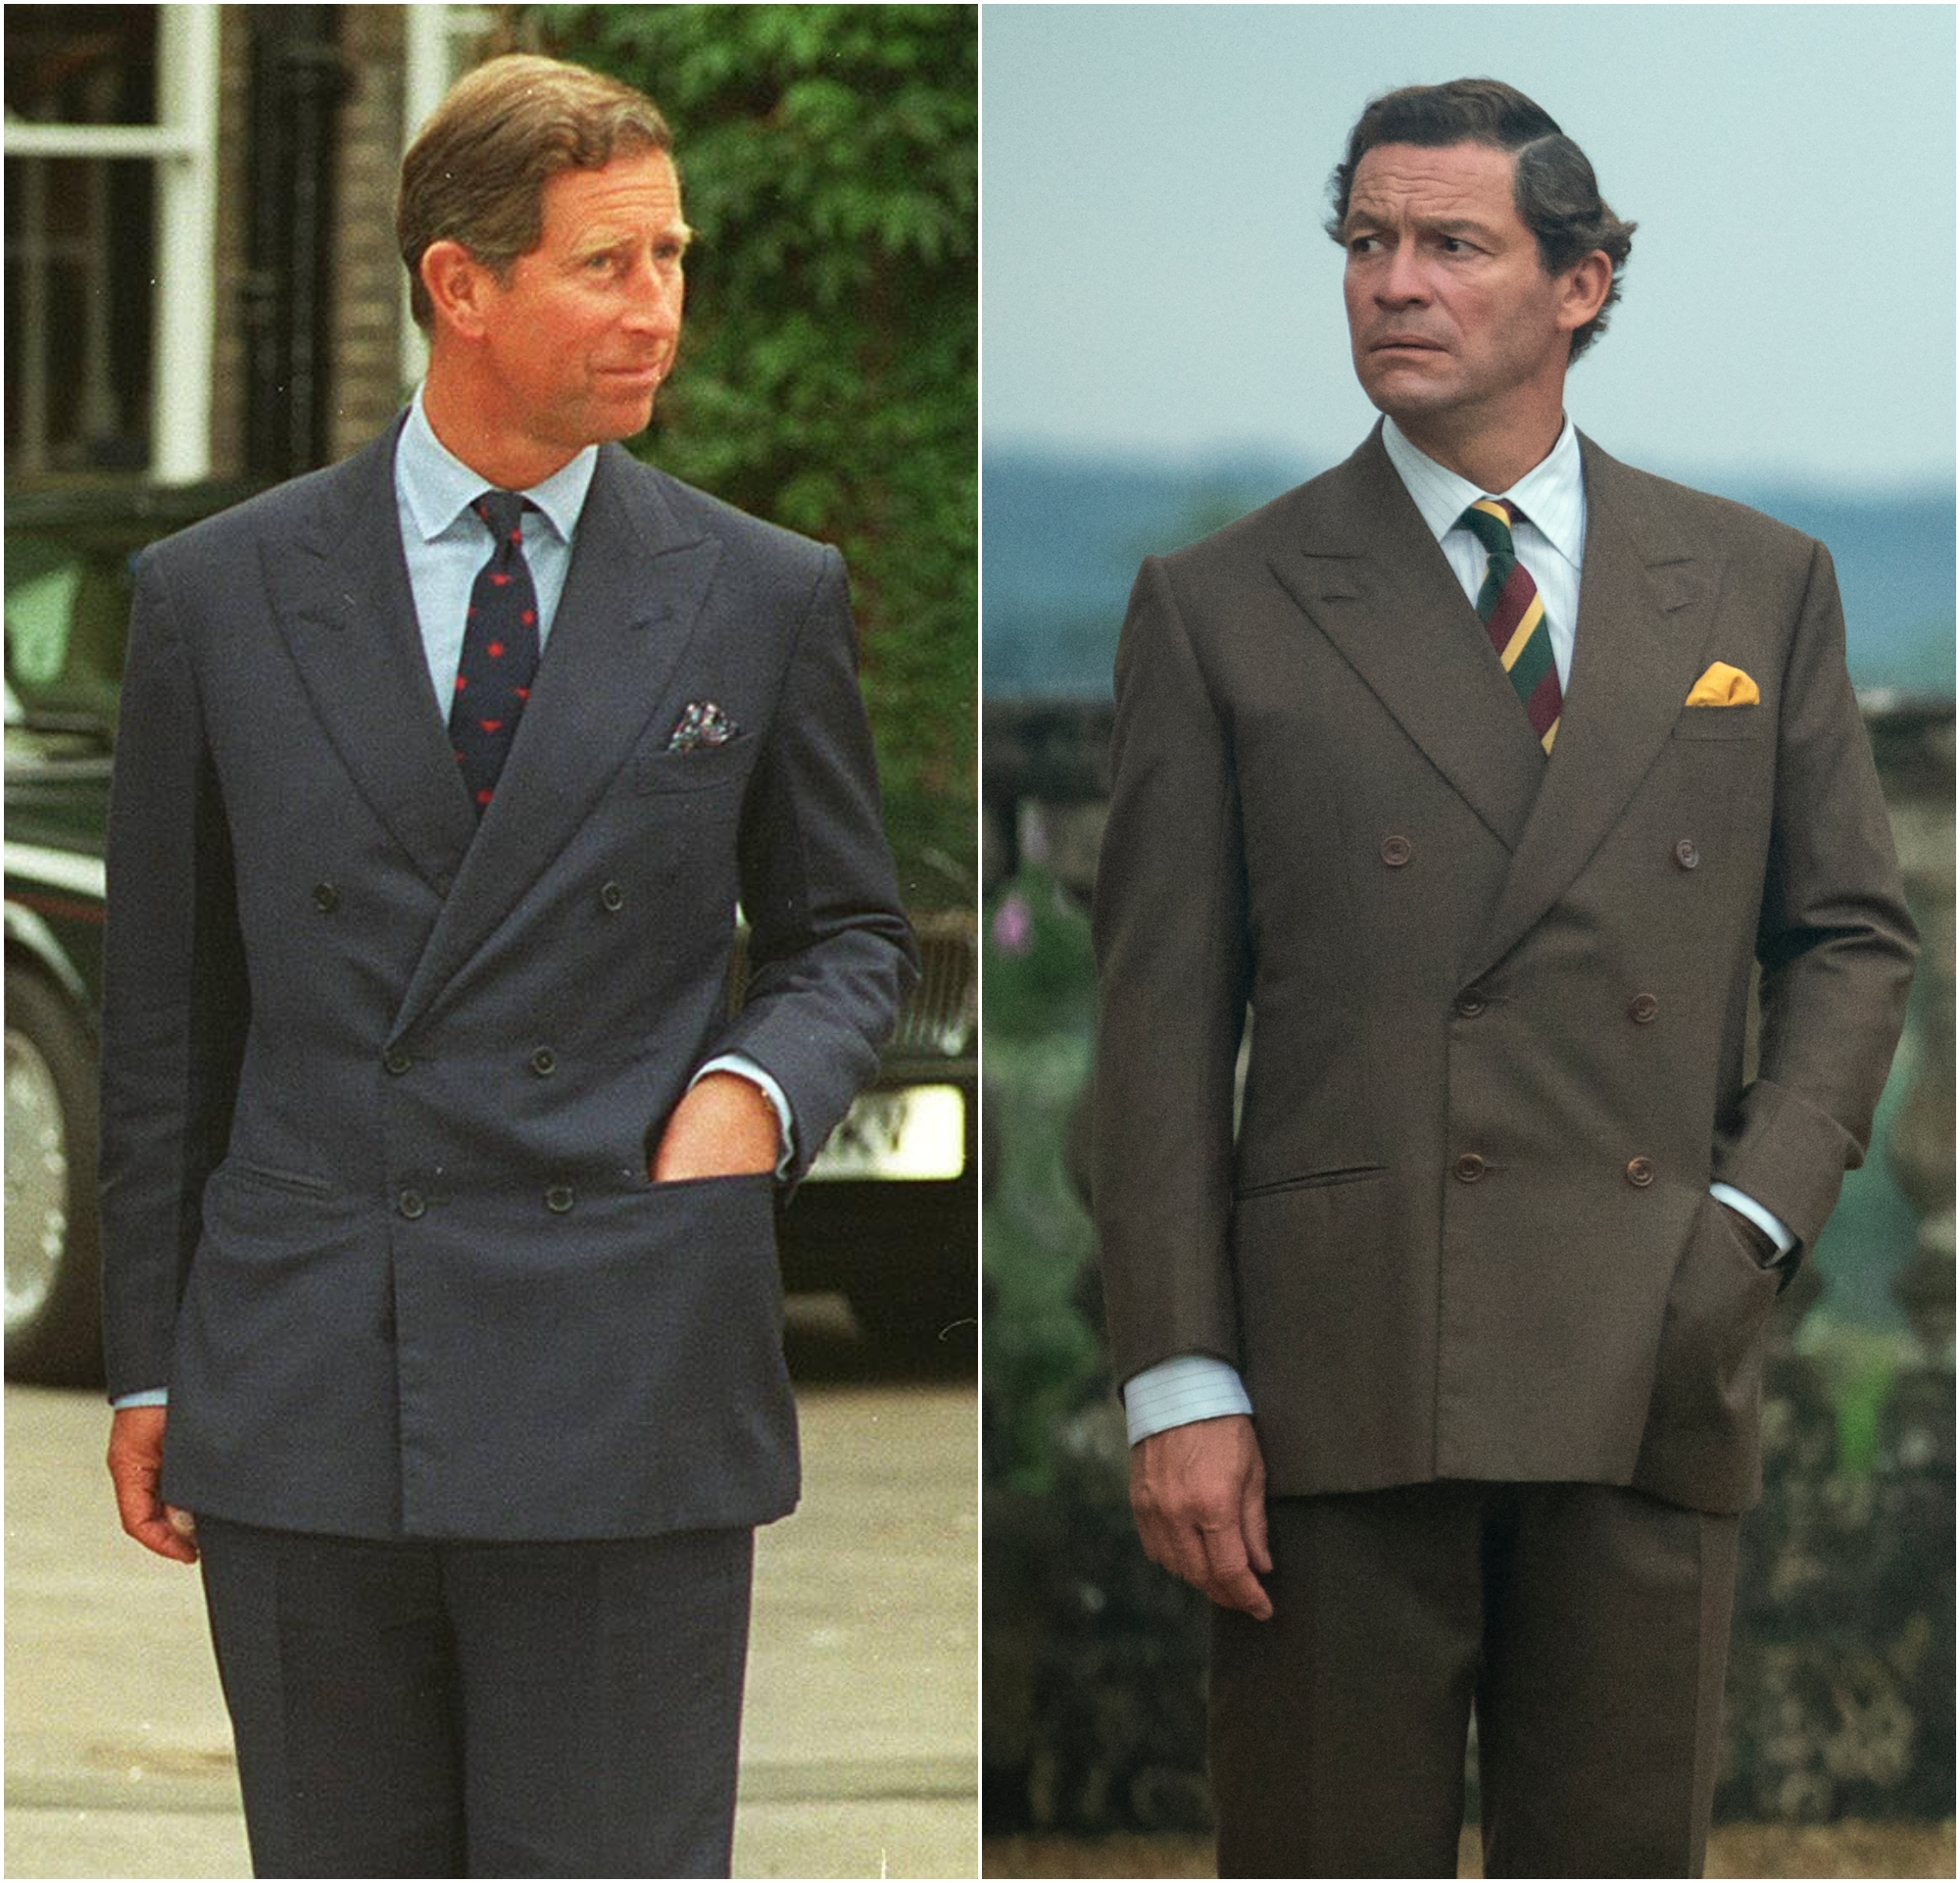 Prince Charles in 1995 next to a still of Dominick West as Prince Charles in The Crown